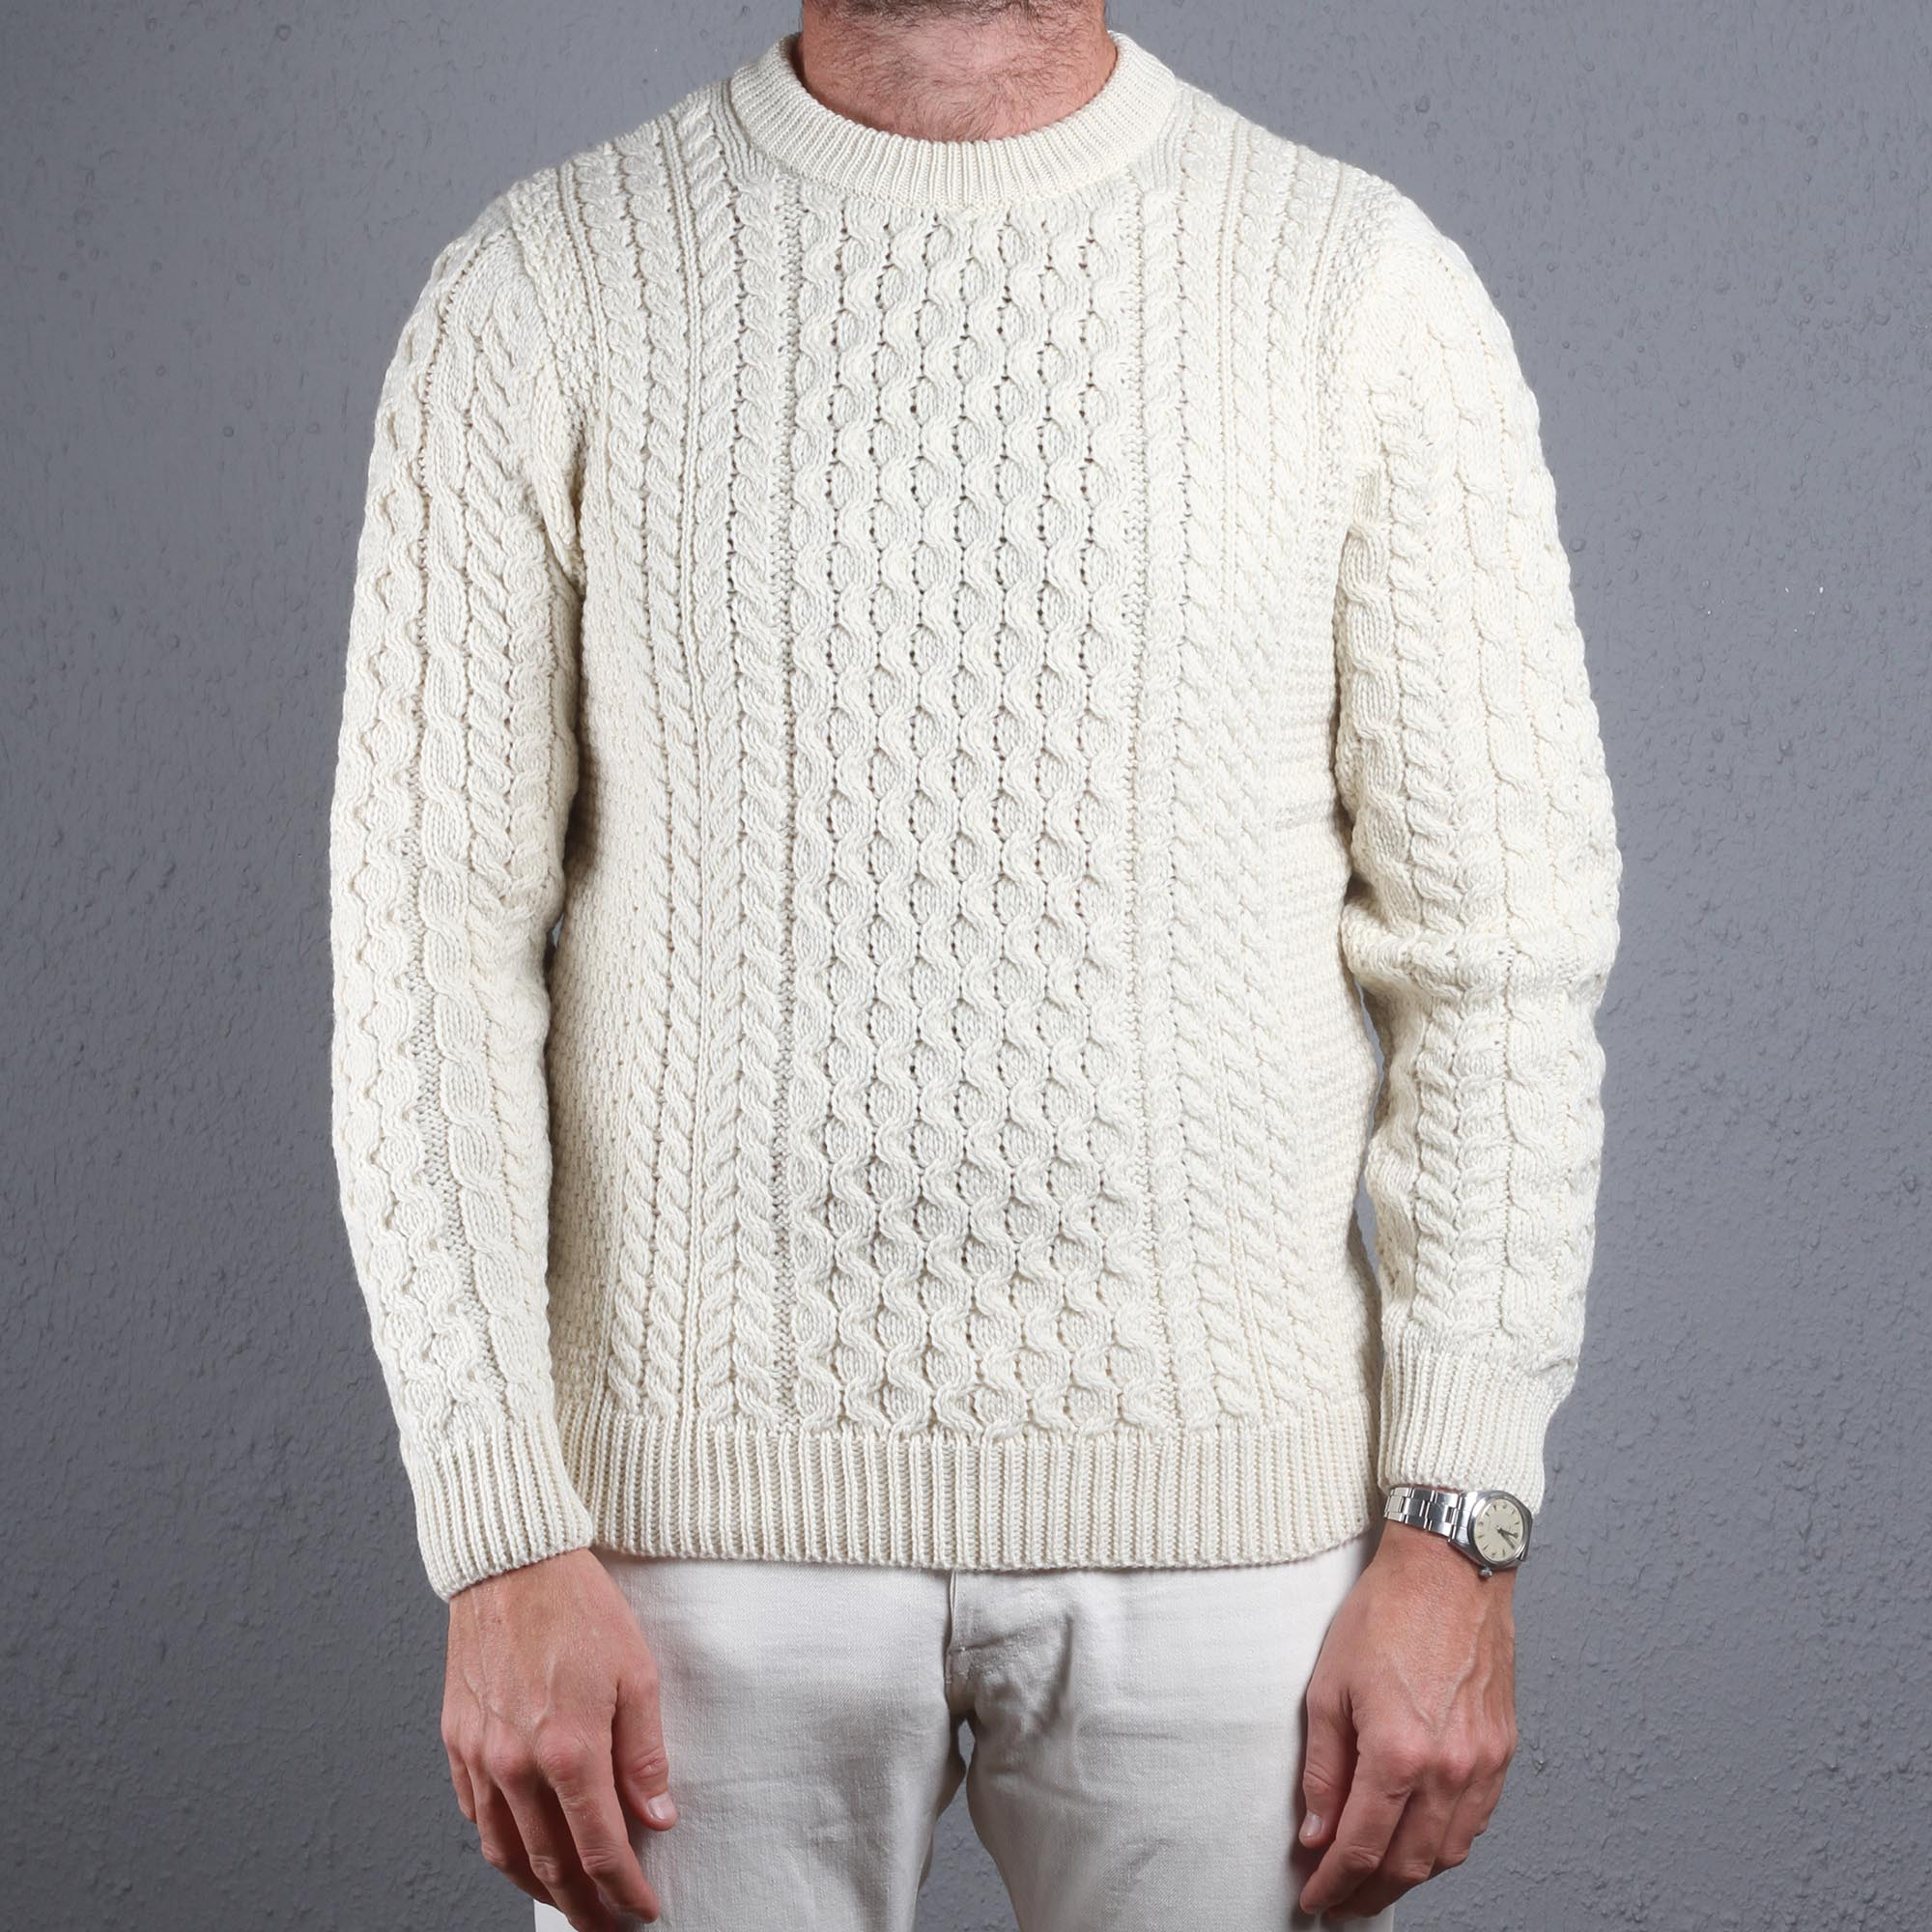 84787067f52a1d Sunspel Fisherman Cable Knit Sweater